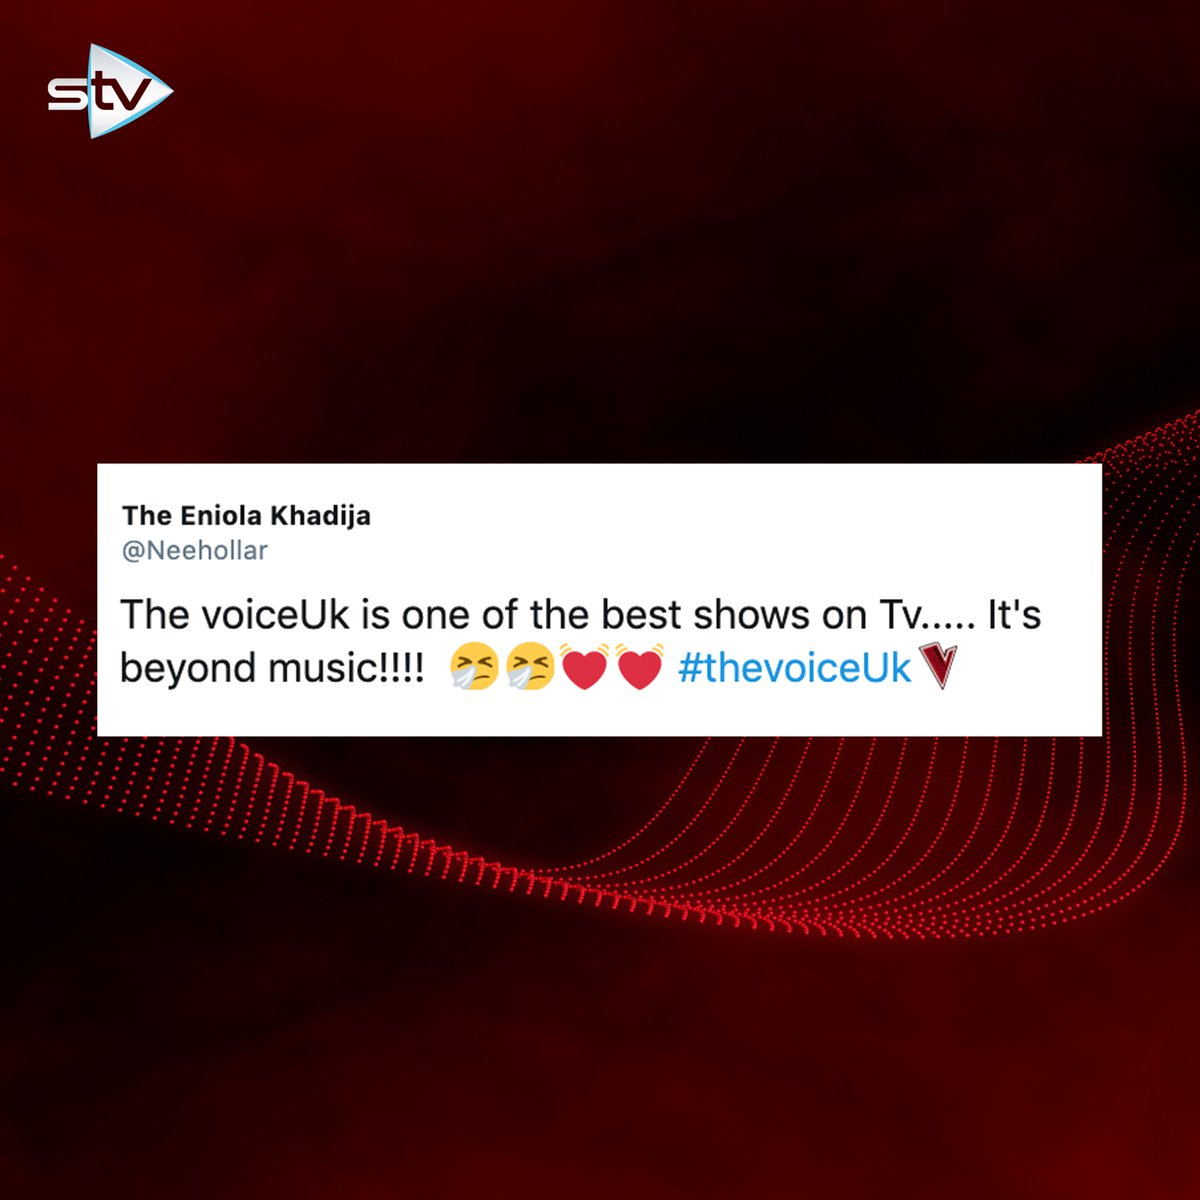 🎤 There really is no better singing competition! #TheVoiceUK